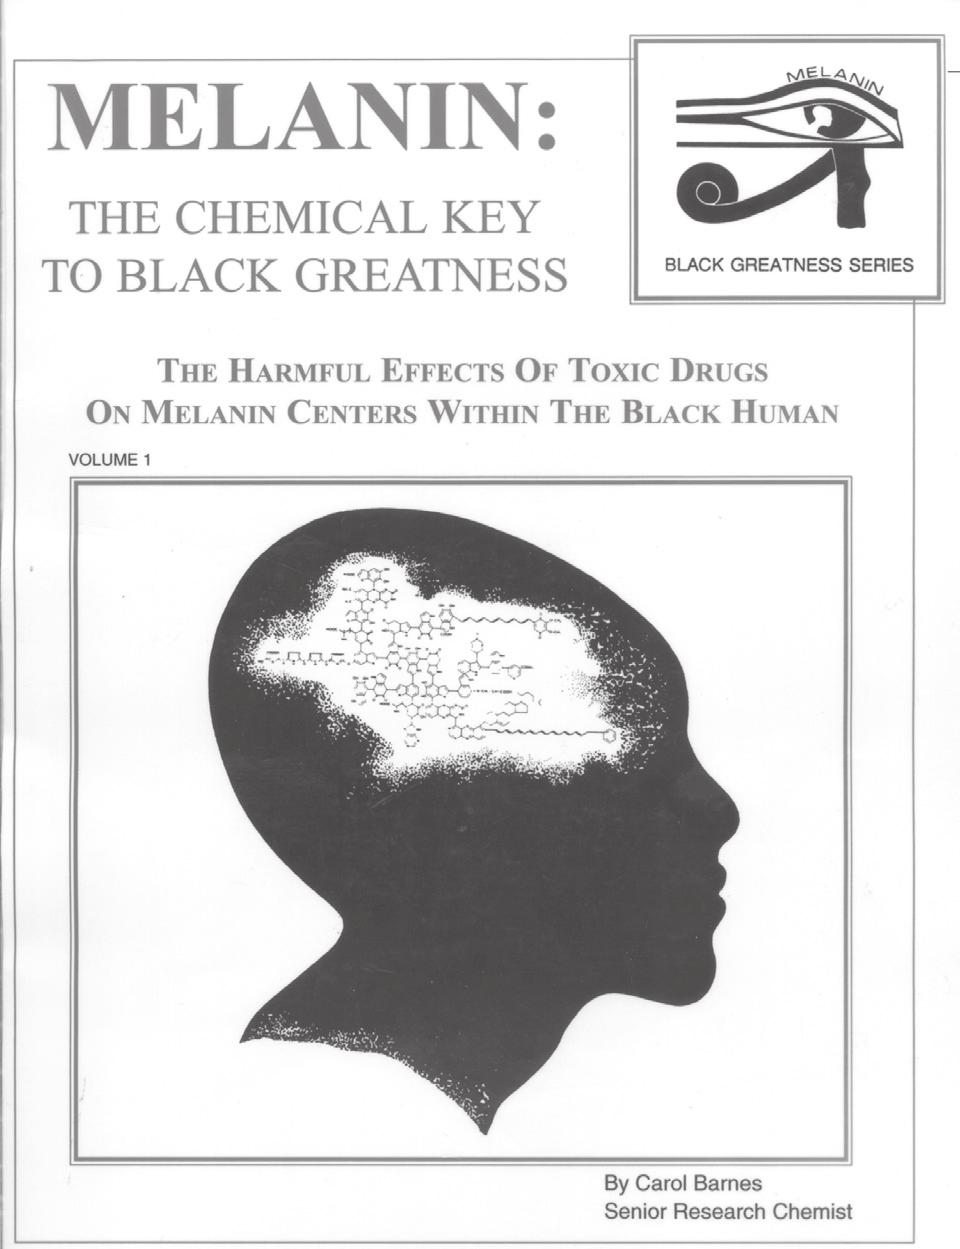 hight resolution of i n t r o d u c t i o n 15 figure 2 melanin the chemical key to black greatness carol barnes